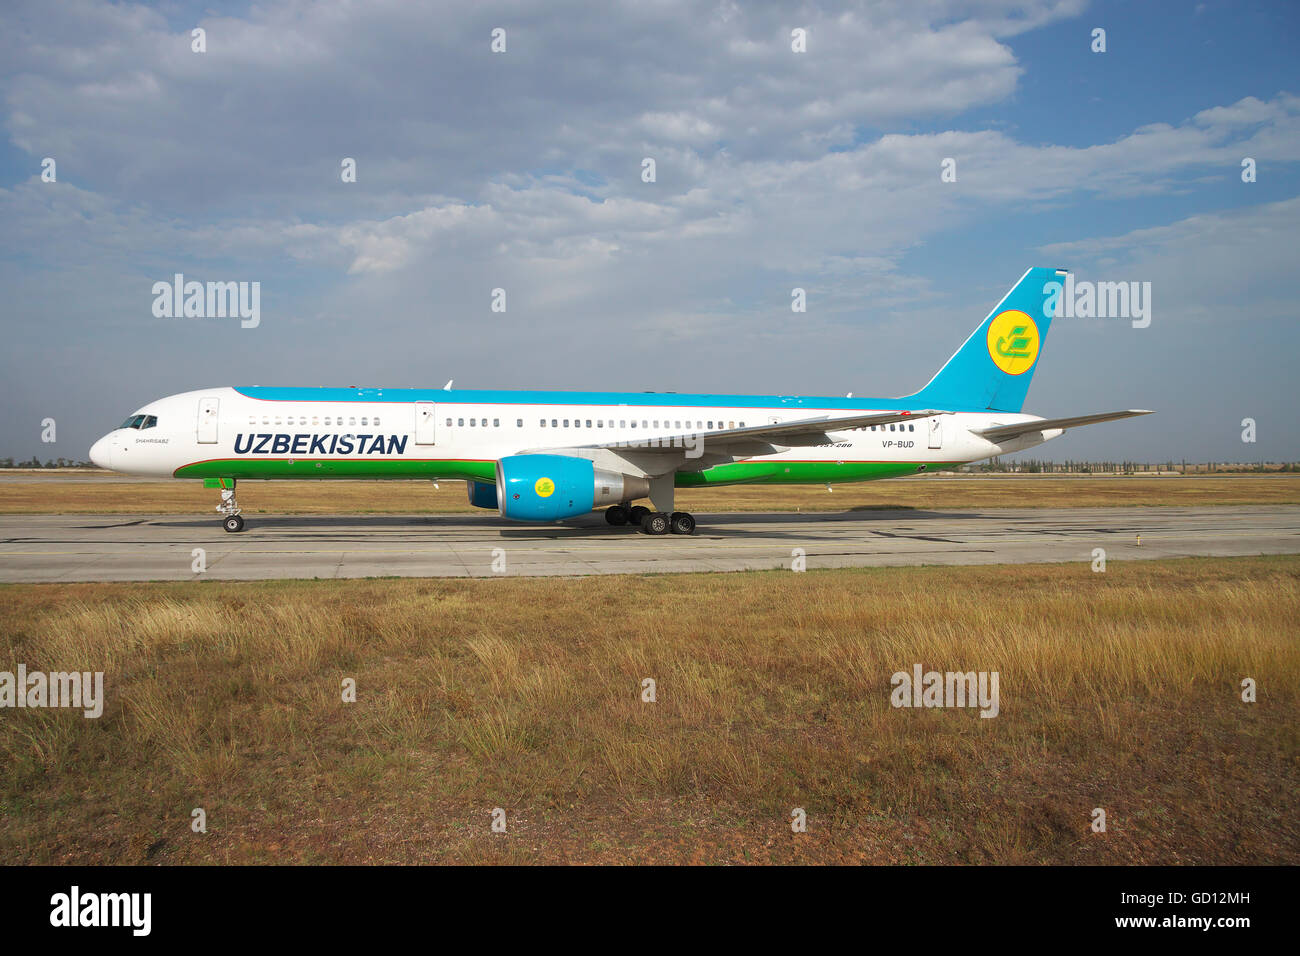 Simferopol, Ukraine - September 13, 2010: Uzbekistan Airways Bowing 757-200 is taxiing along the taxiway in the - Stock Image